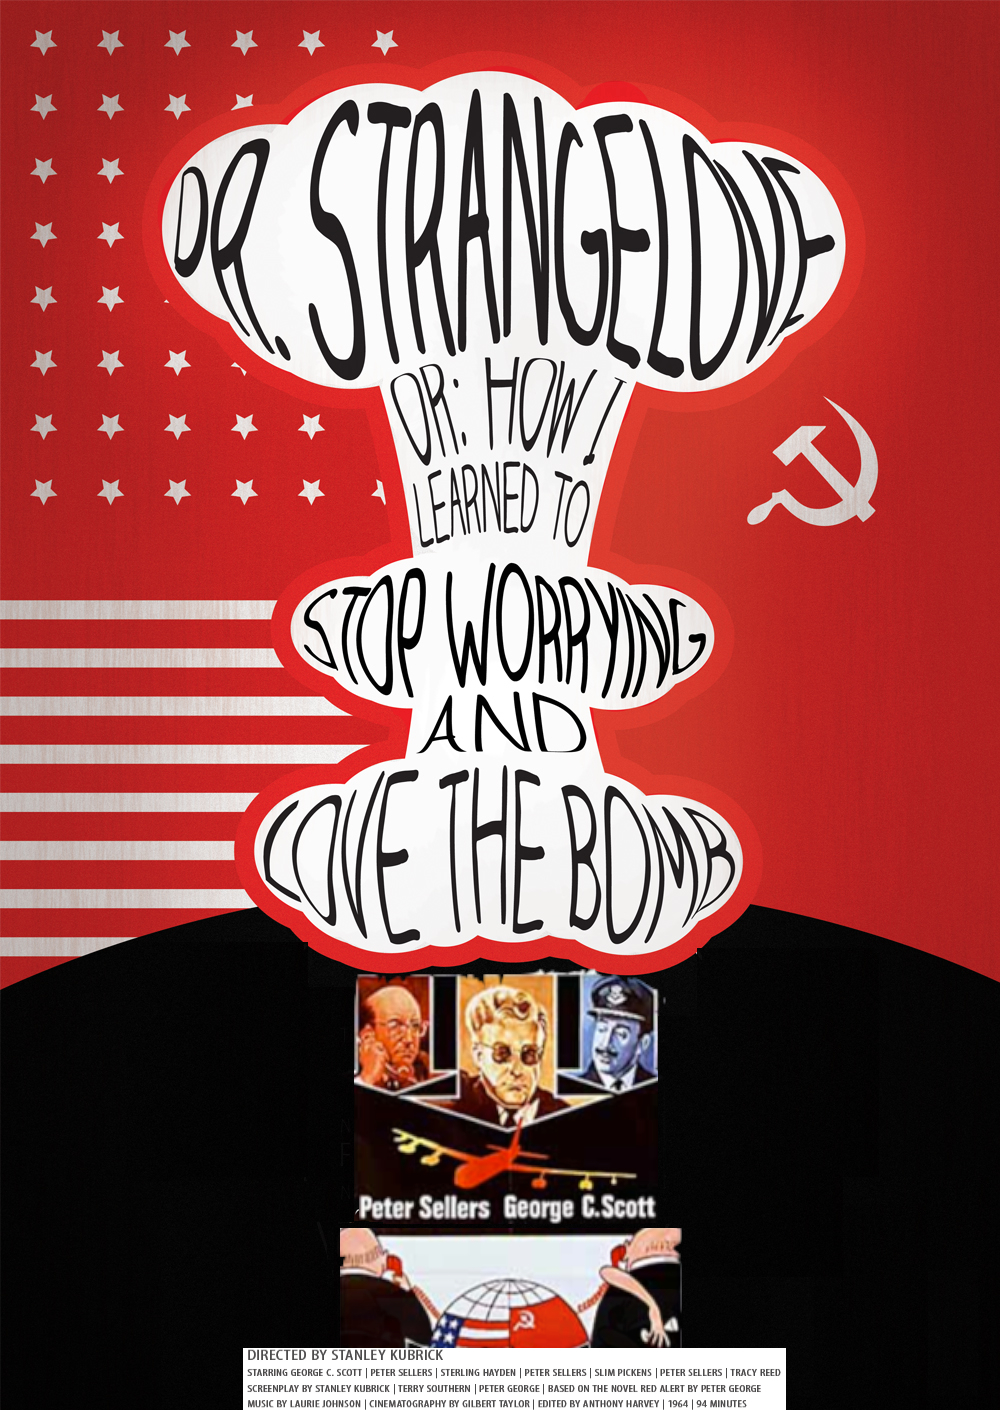 dr_strangelove_or_how_i_learned_to_stop_worrying_and_love_the_bomb_1964[1]